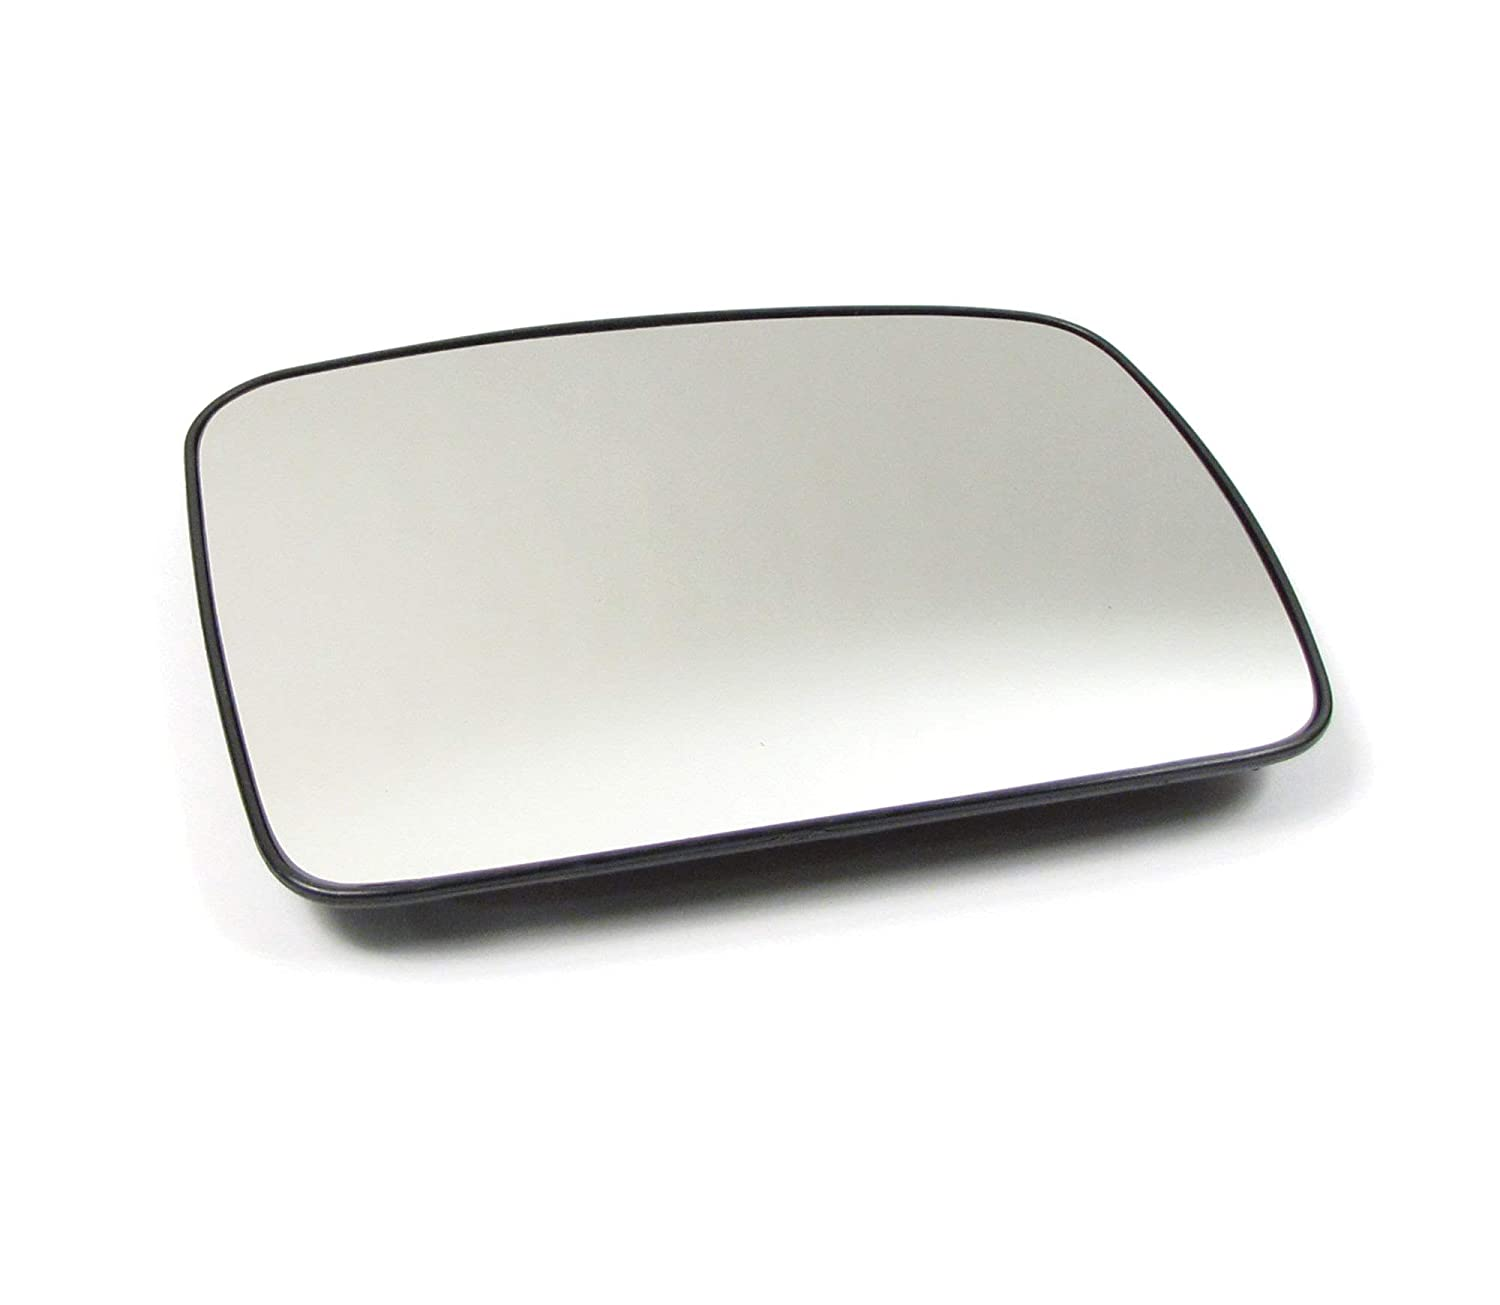 and Range Rover Sport Land Rover LR017067 Passenger Side Convex Mirror Glass for LR2 LR3